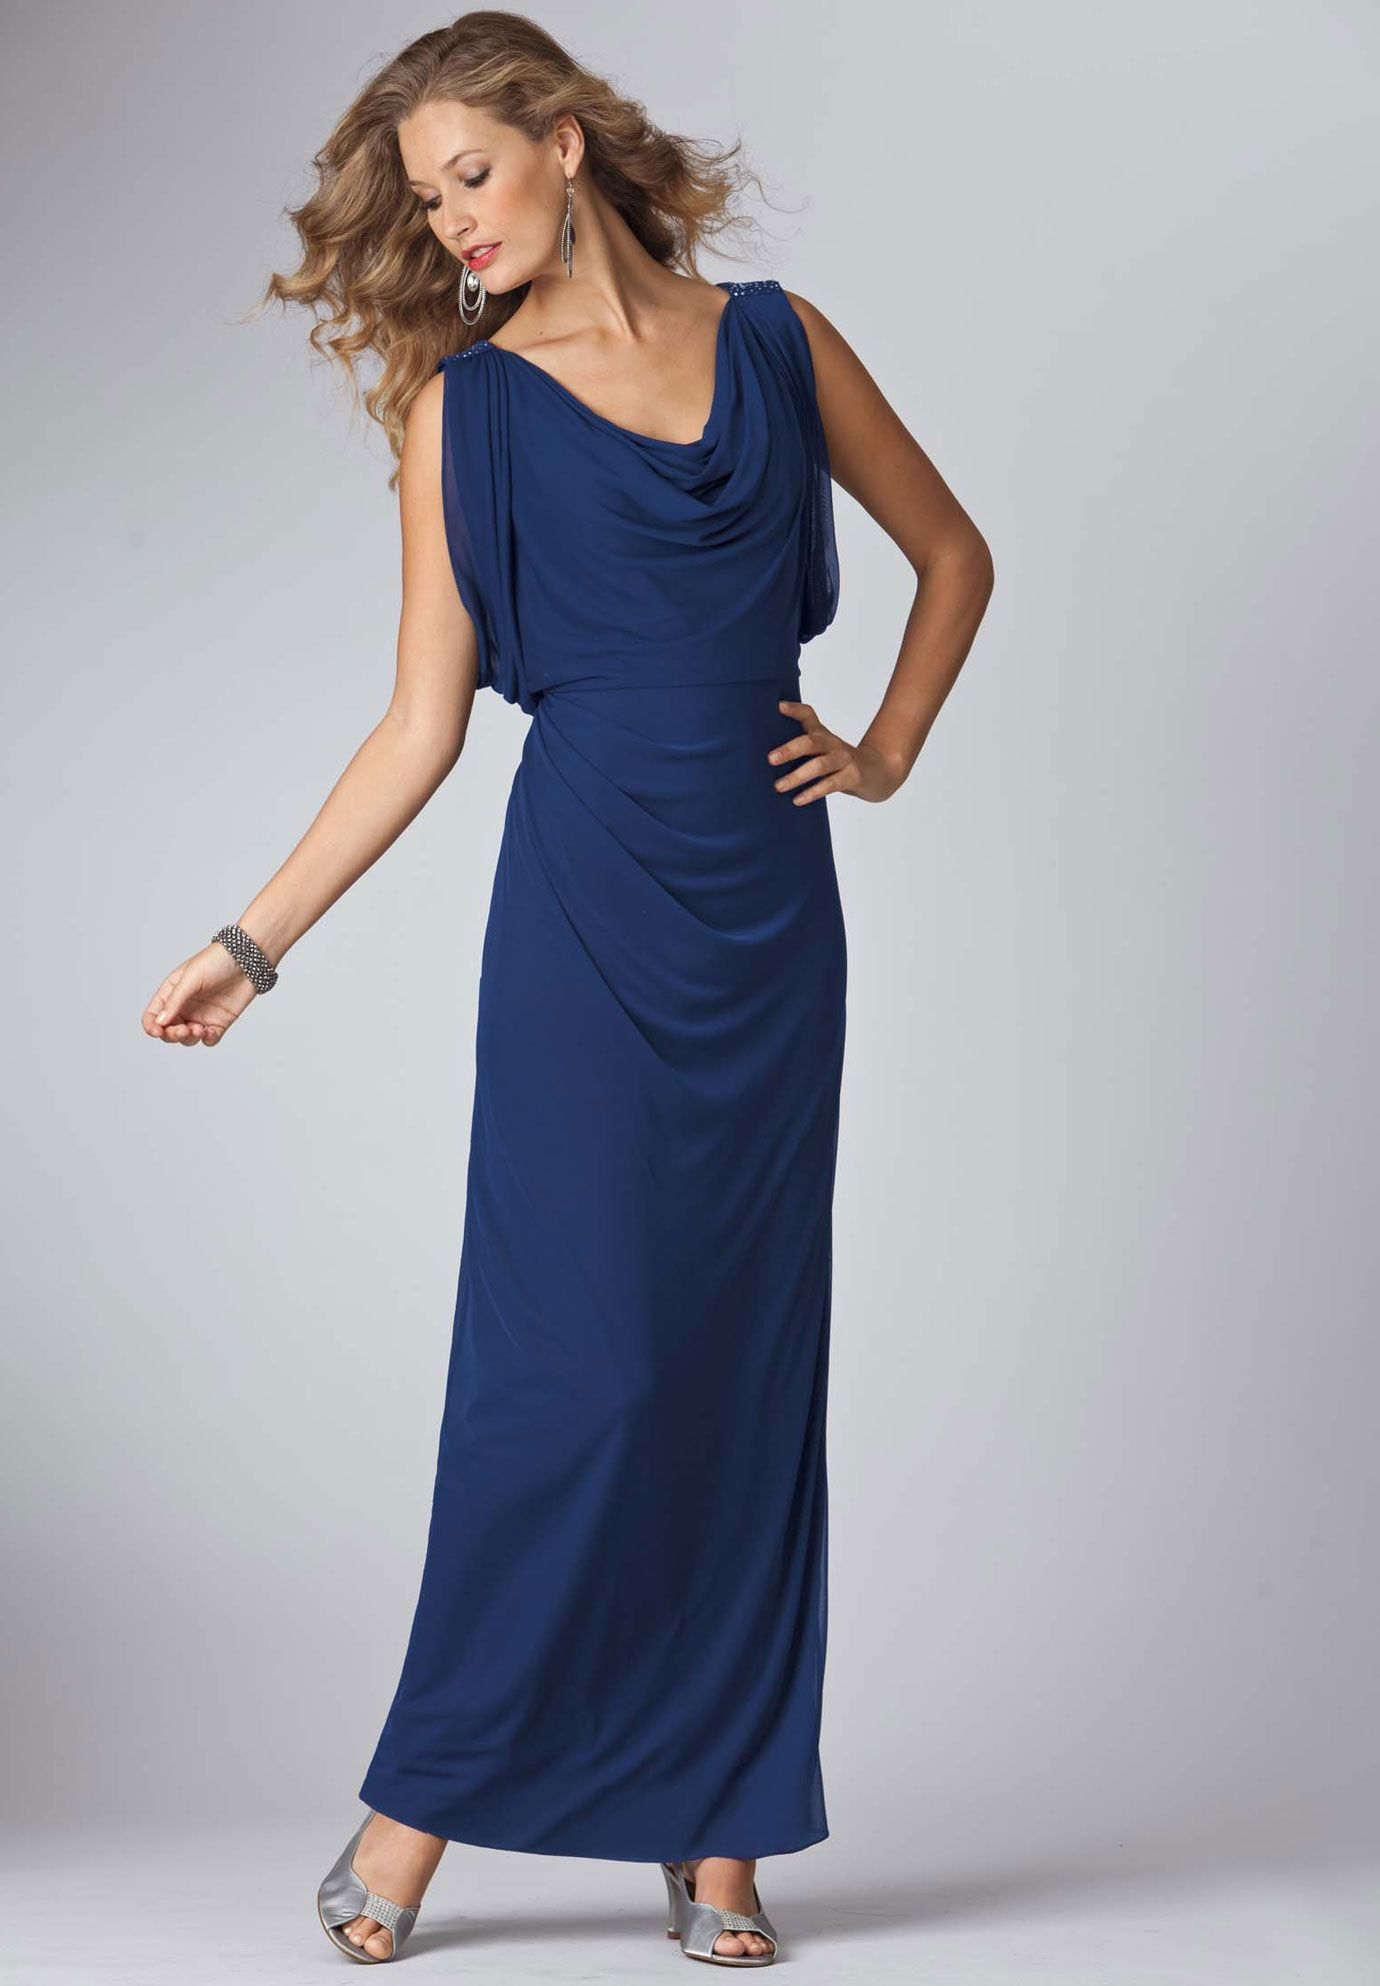 Beaded chiffon empire waist evening gown from roamans save on your